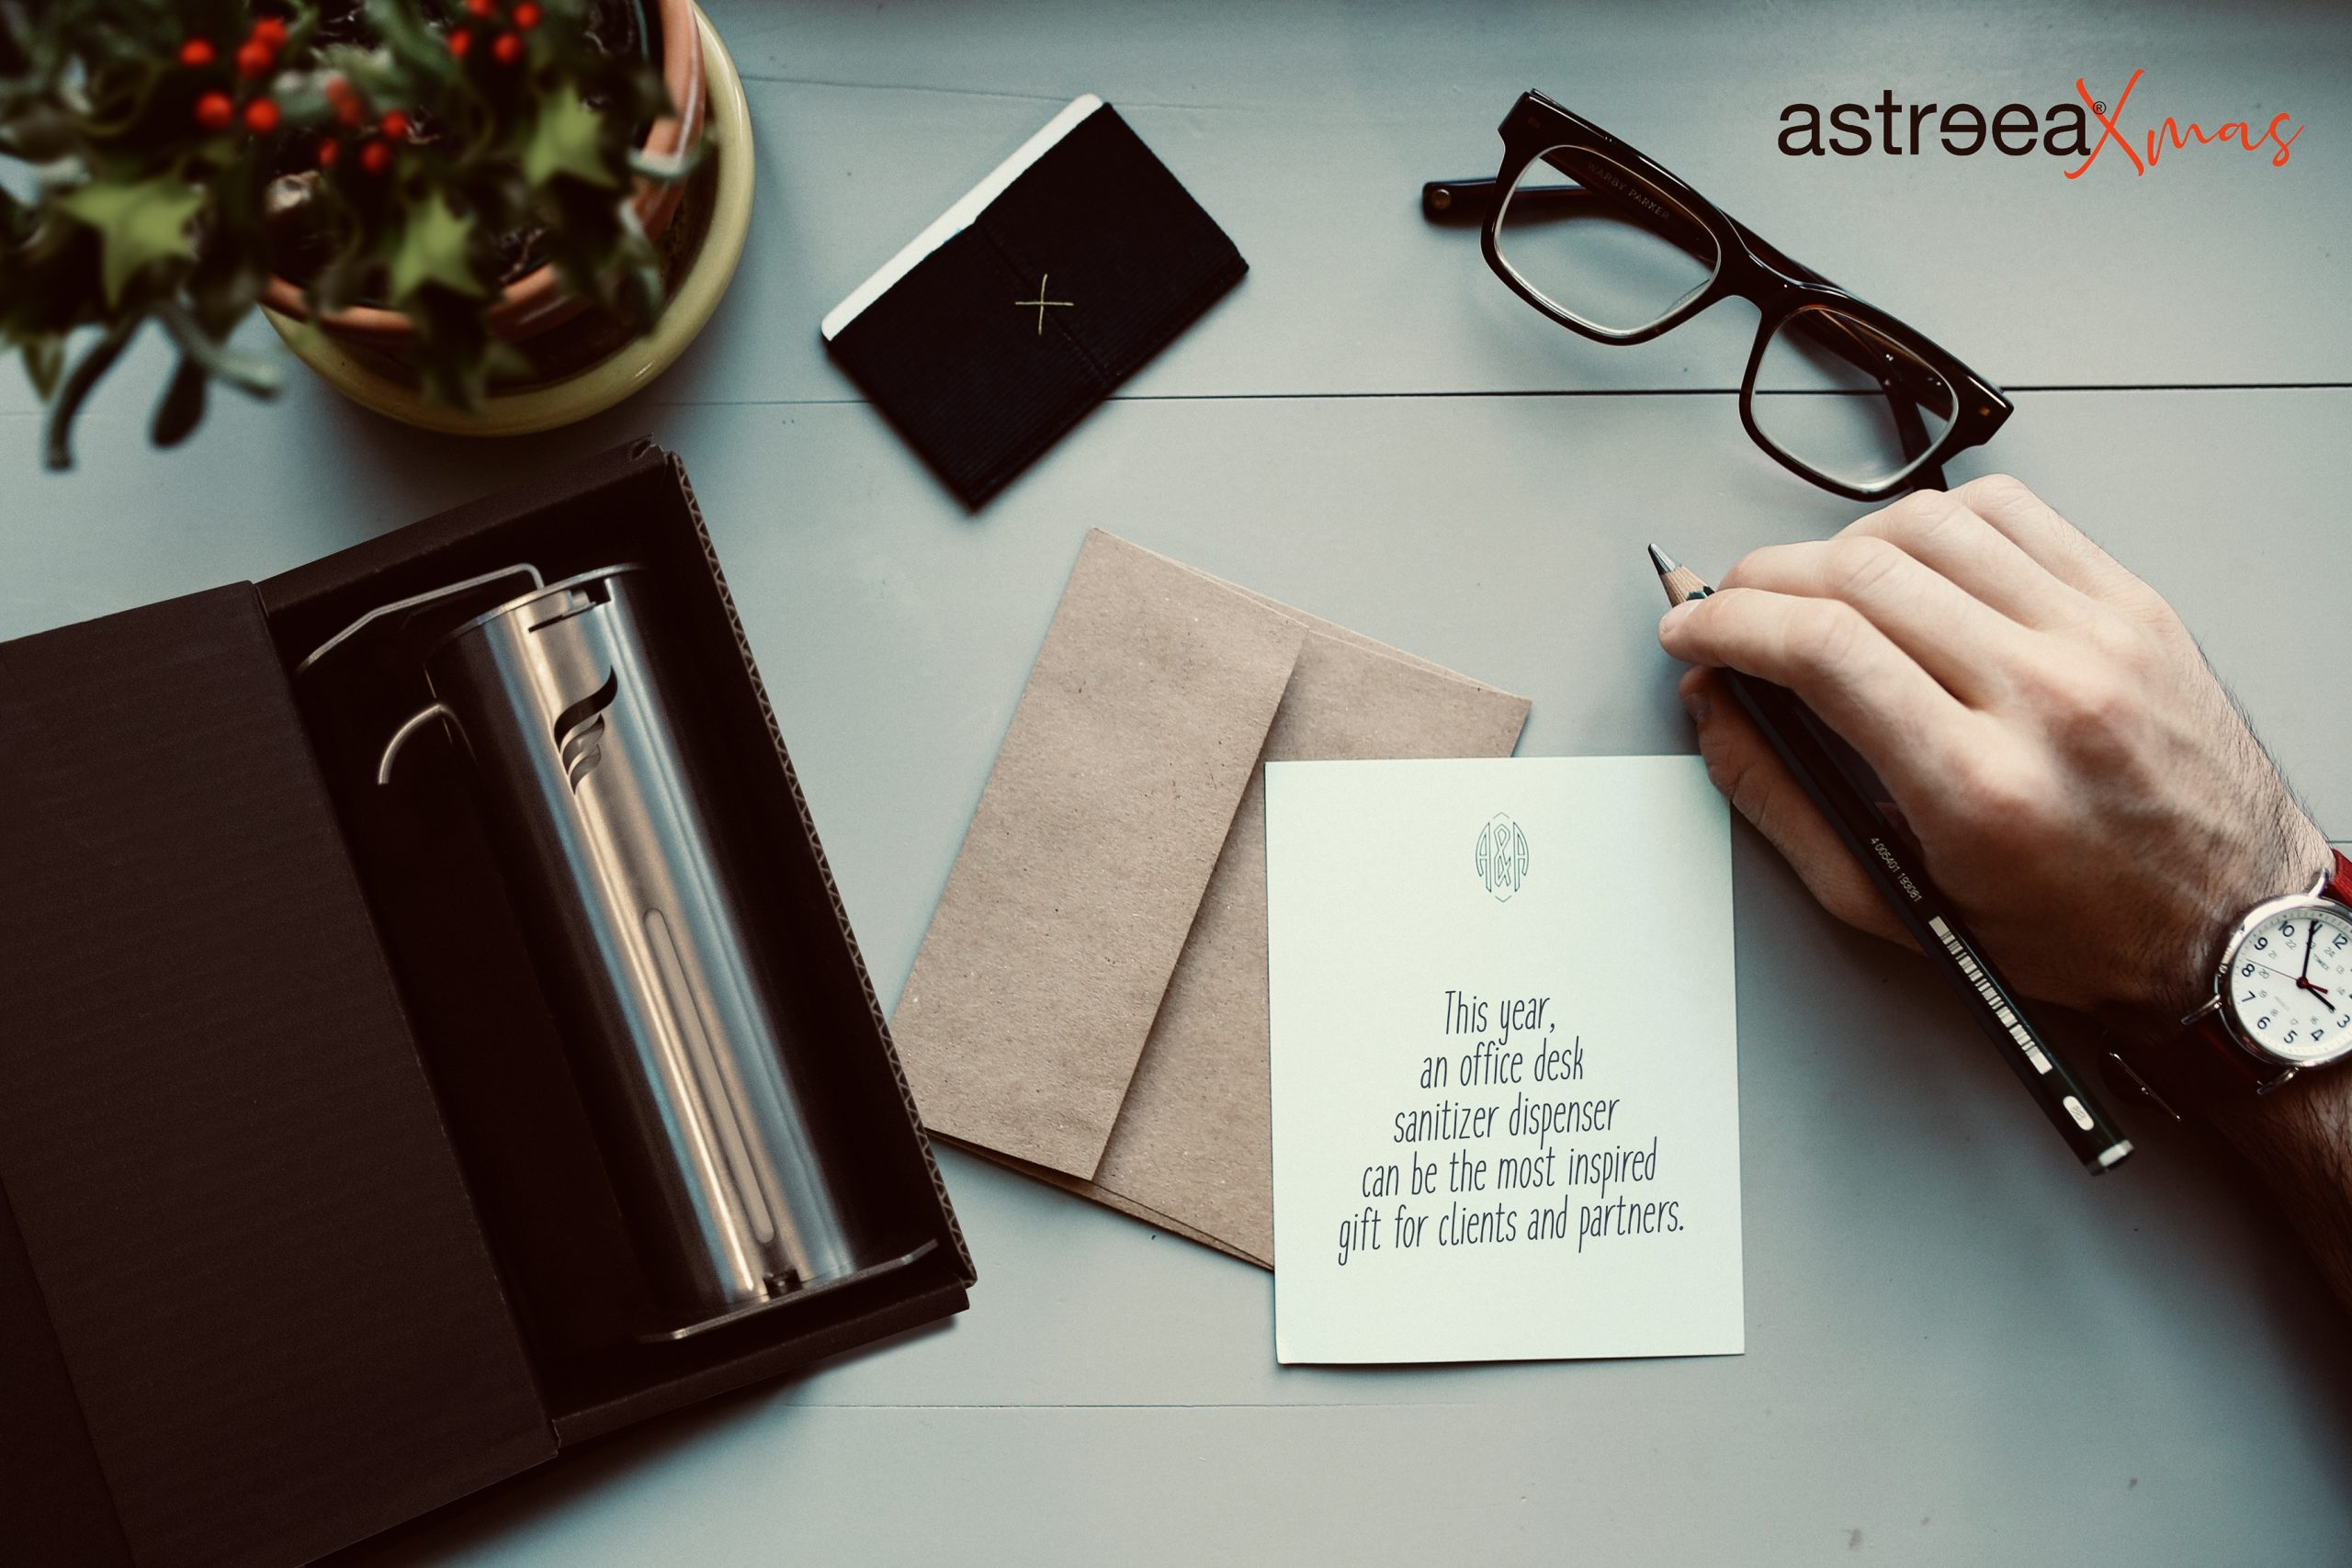 This Christmas, give the gift of care with Astreea